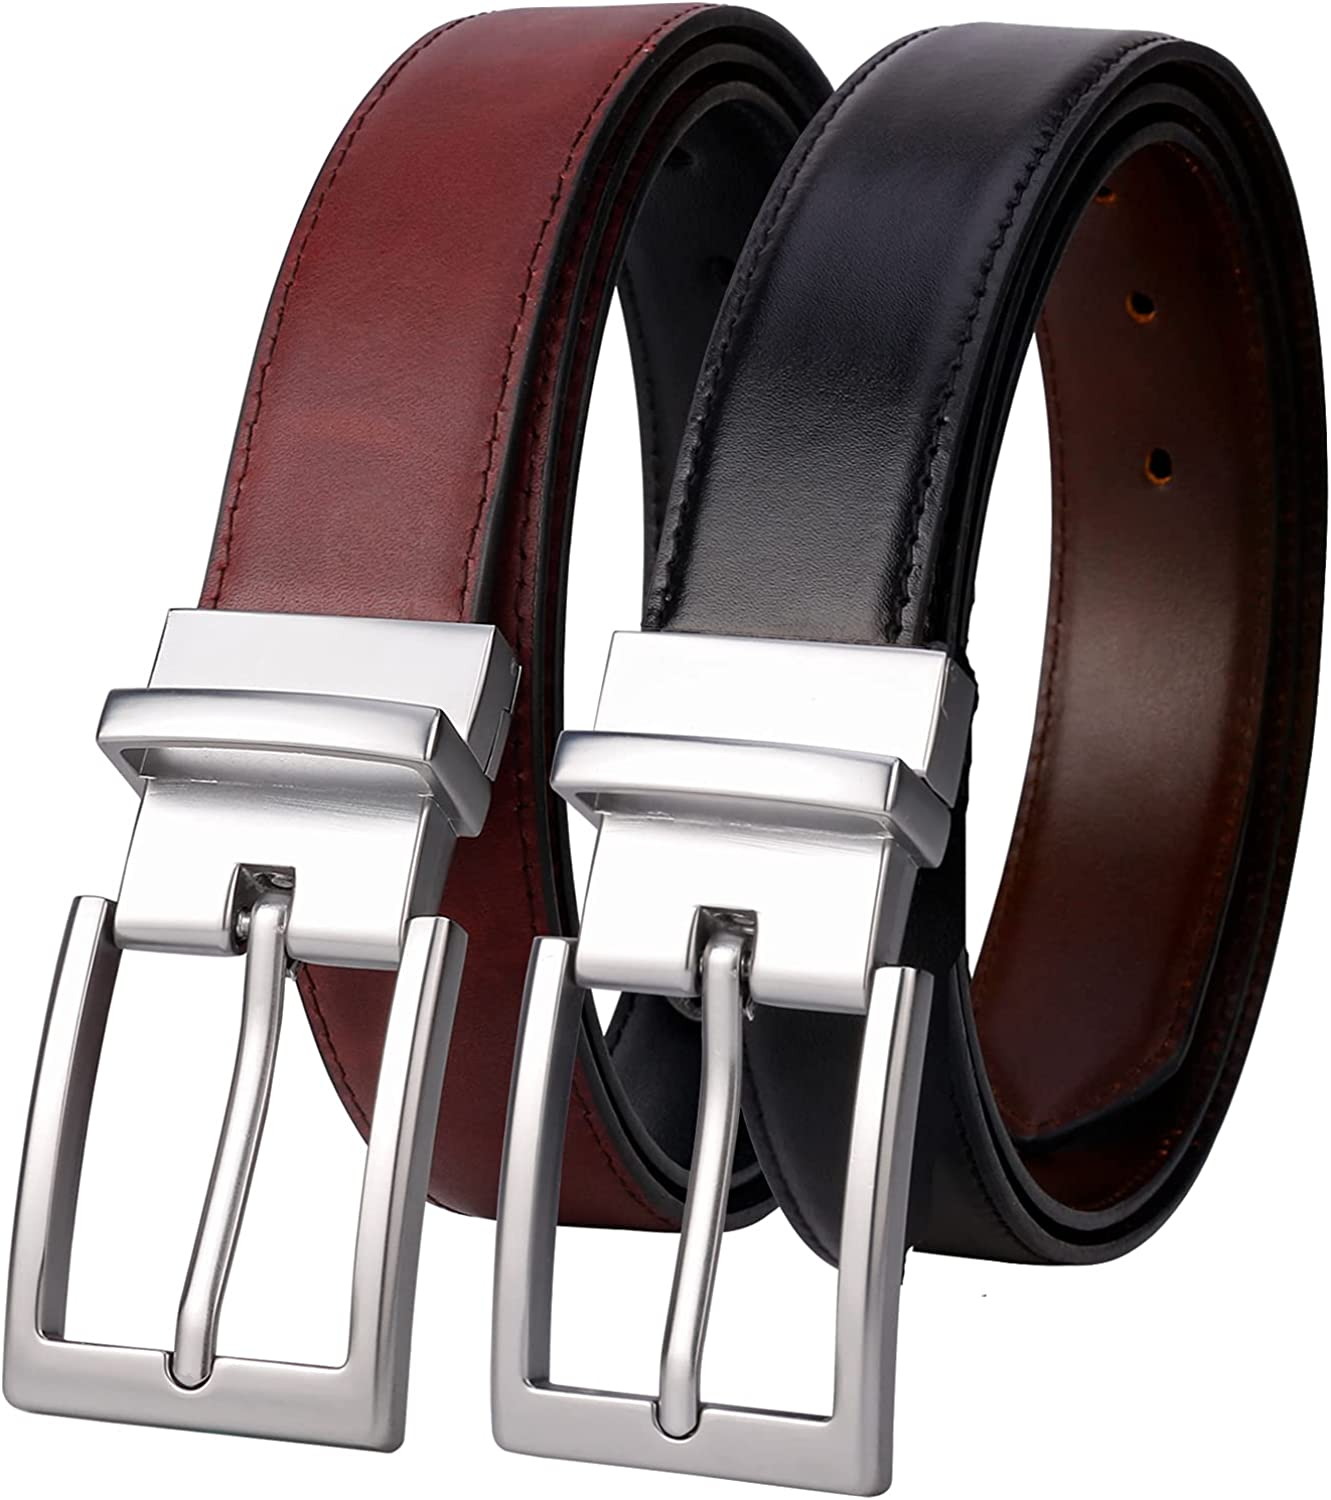 Lavemi Mens Belt Reversible 100% Italian Cow Leather Dress Casual Belts for men,One Reverse for 2 Colors,Trim to Fit